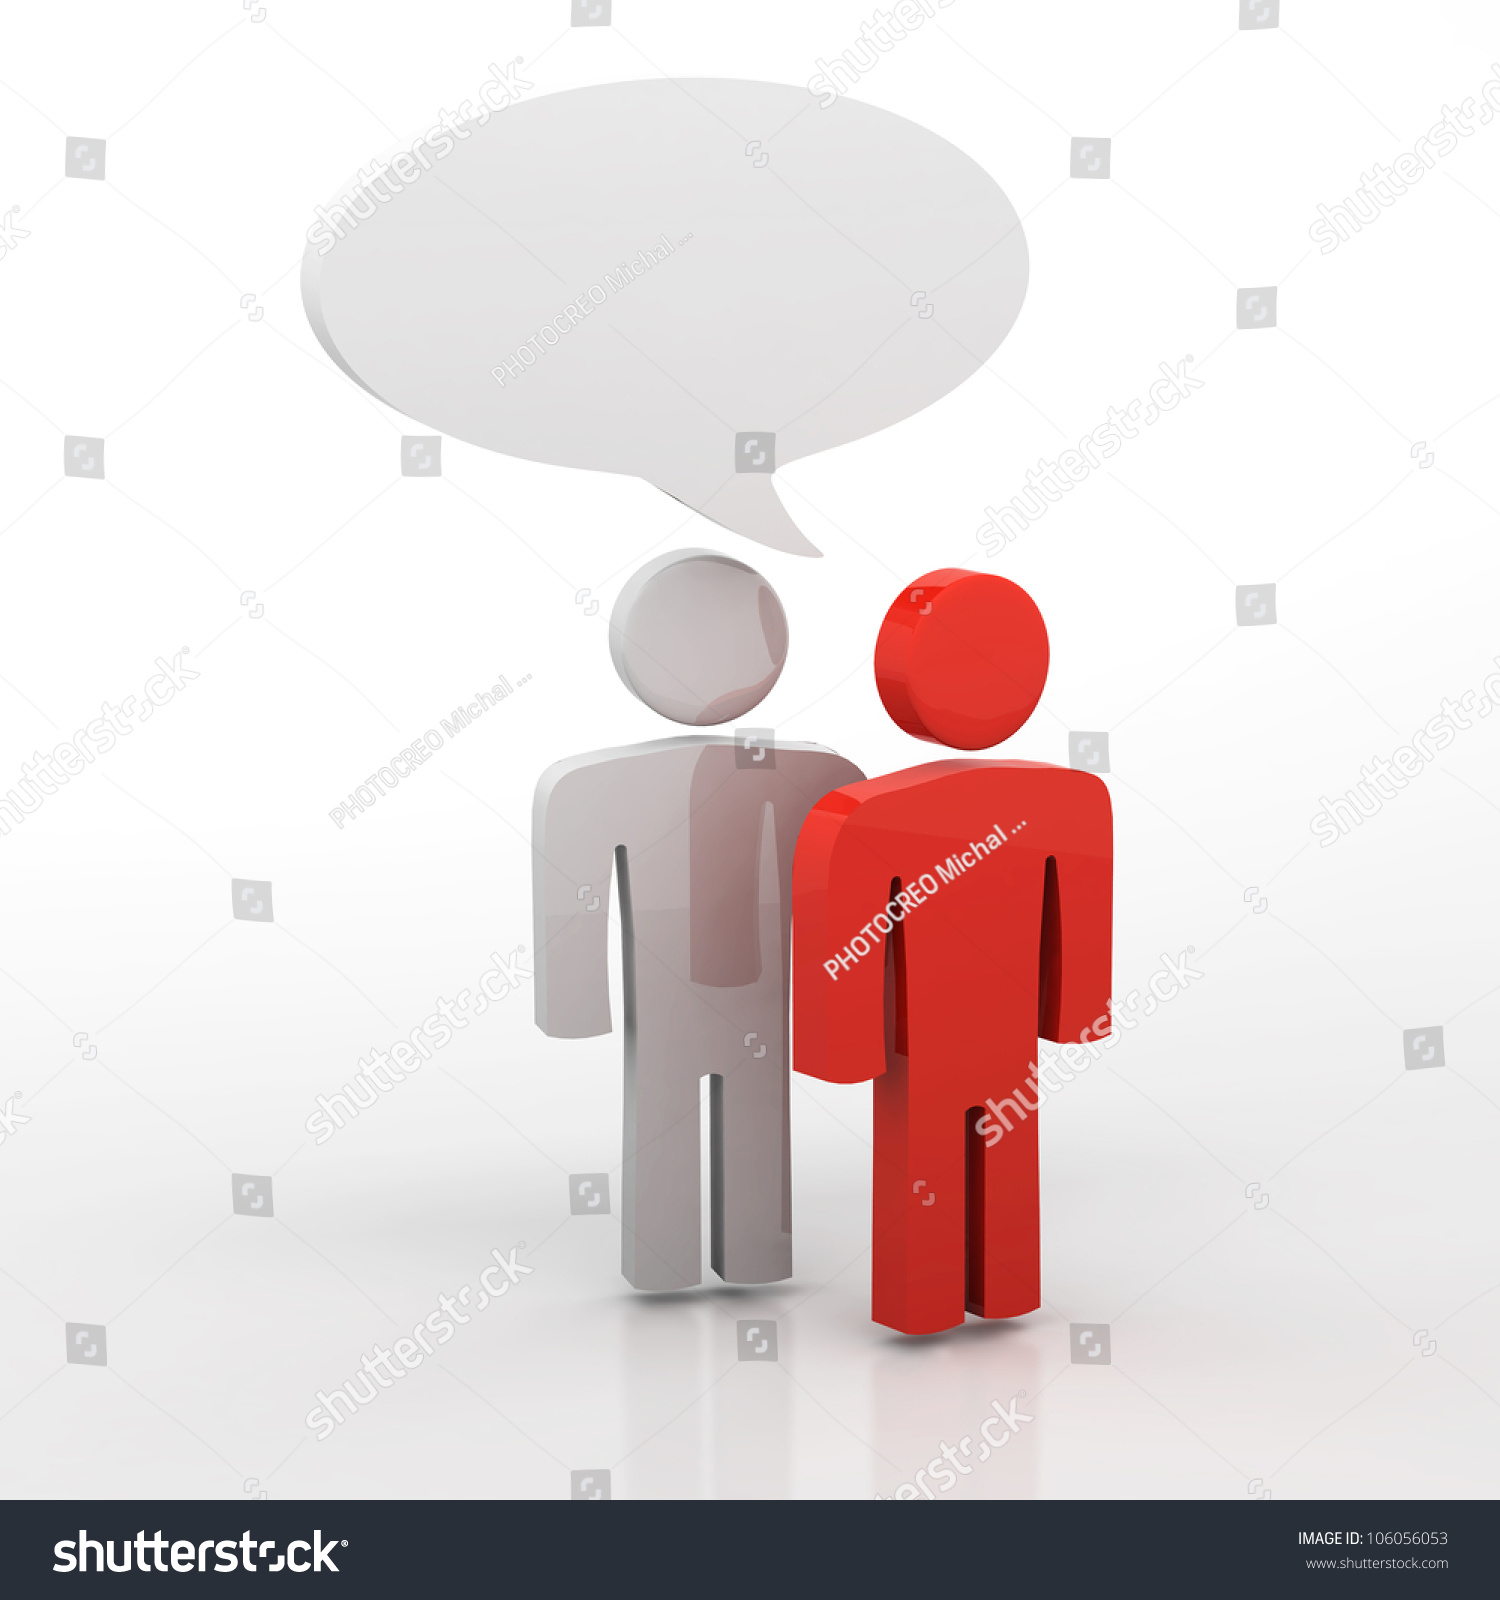 People Having Discussion, Blank Speech Bubbles. One Red